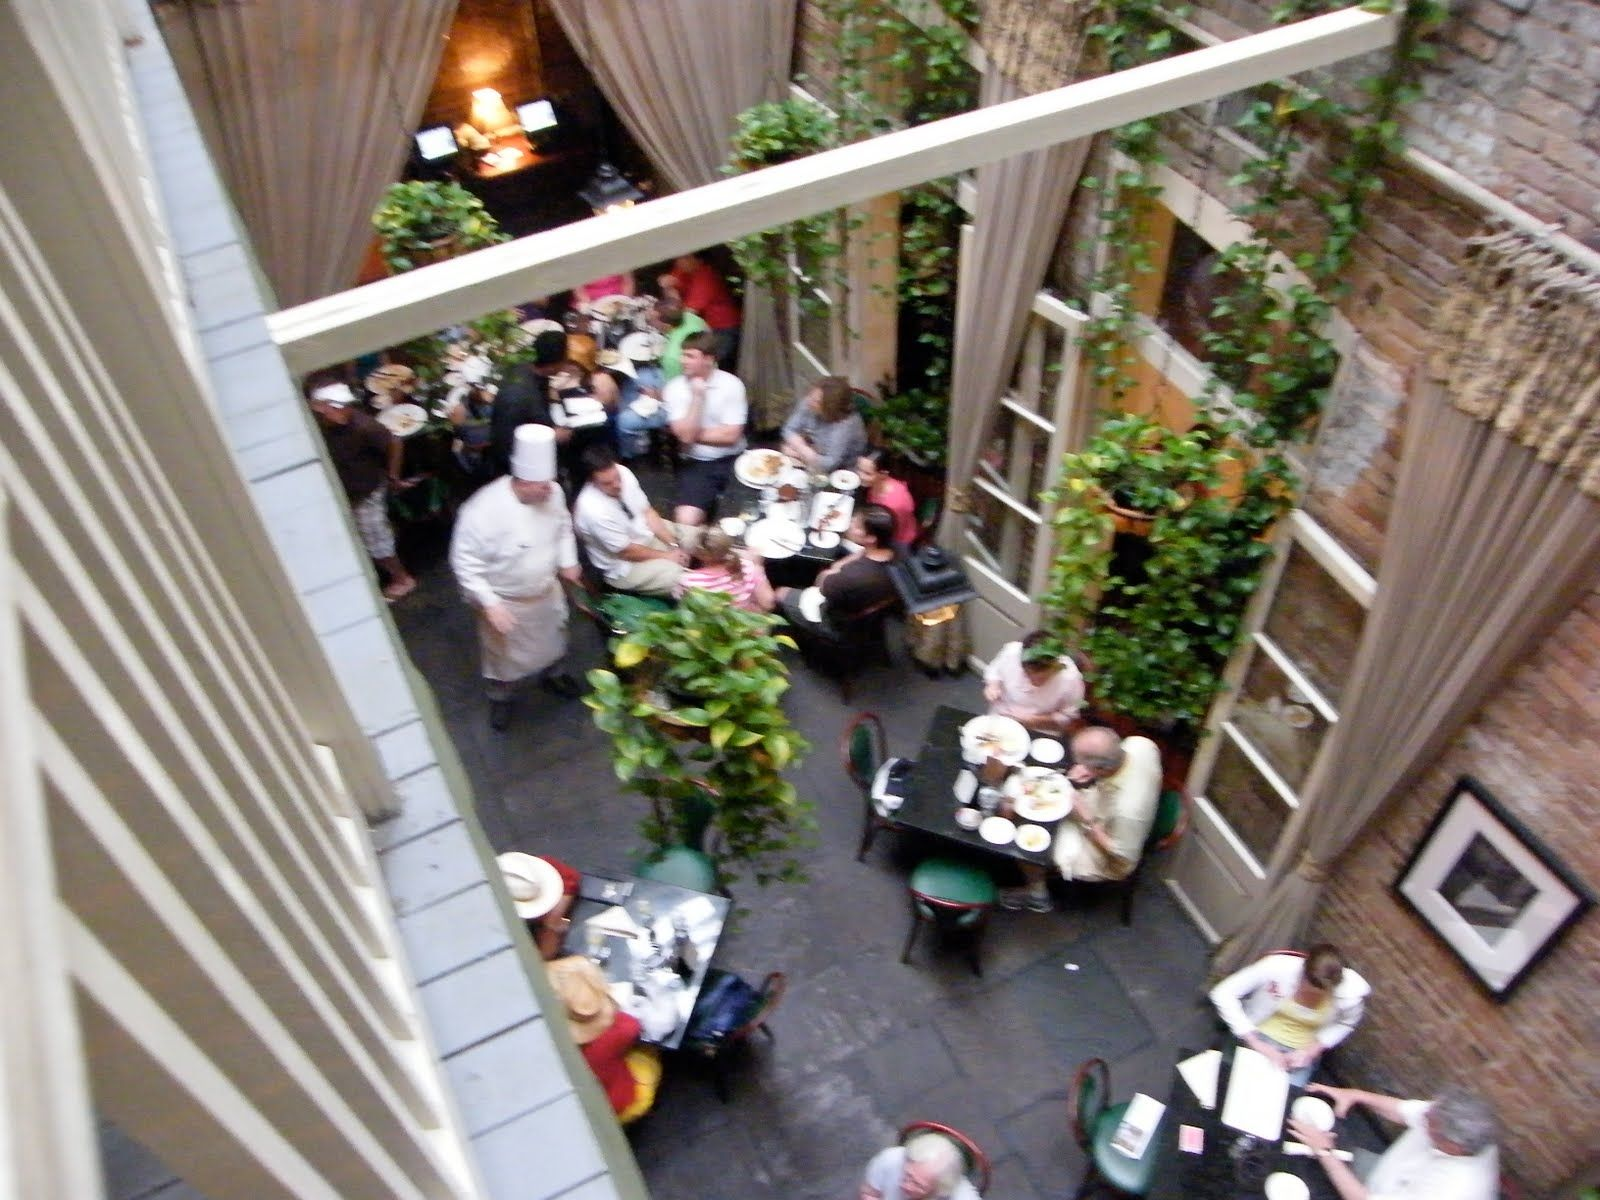 Attirant Murielu0027s Jackson Square, New Orleans   Enclosed Courtyard Dining. My  Favorite Haunted Restaurant In